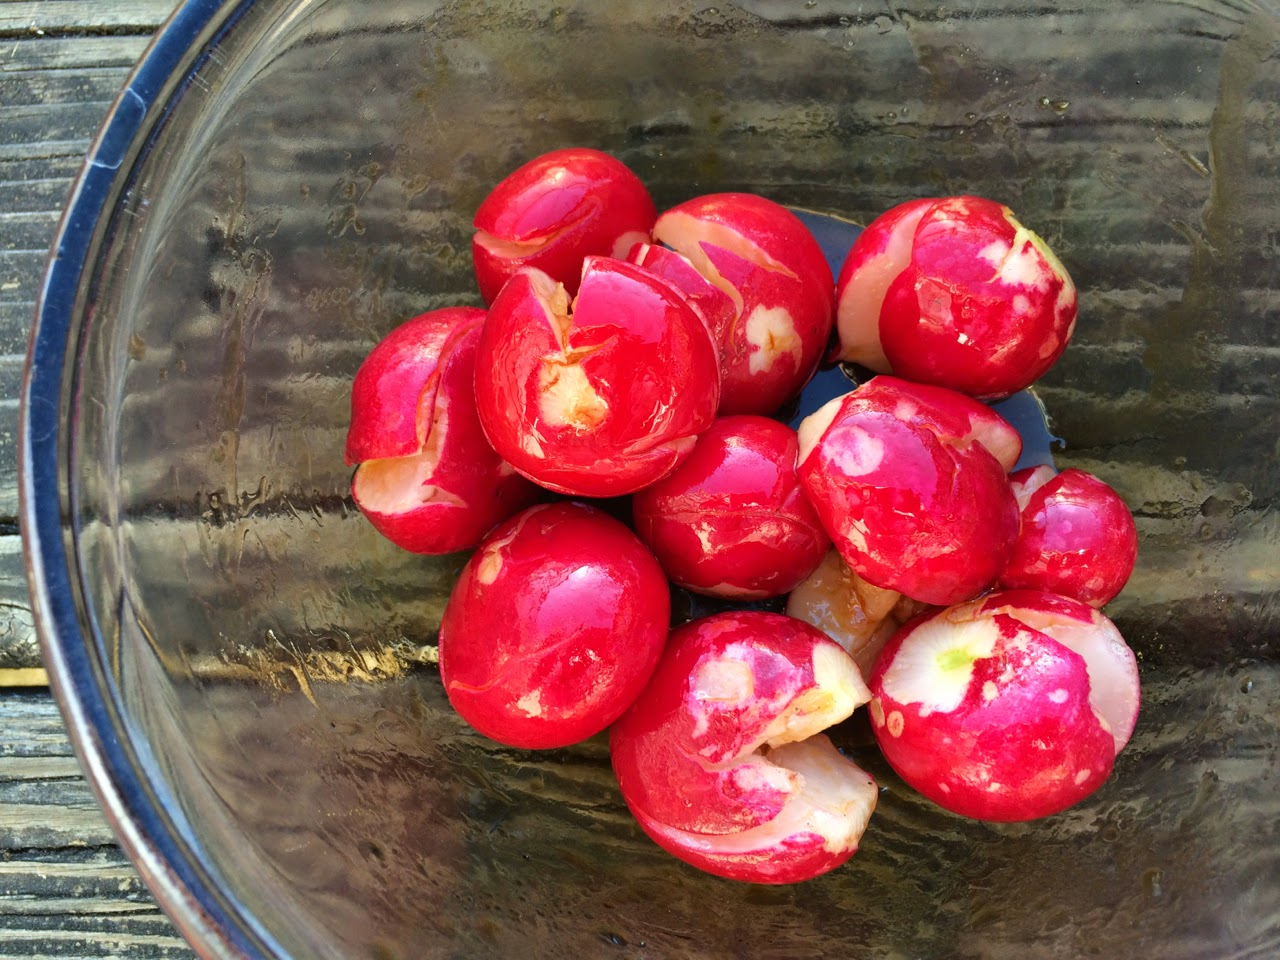 Radishes in Chili Oil